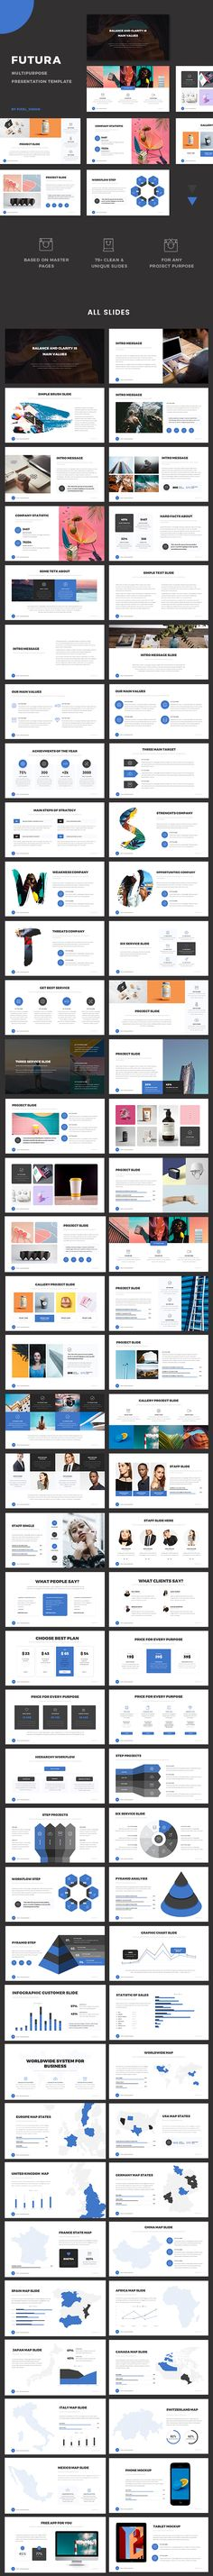 50 Best Company profile presentation images in 2019